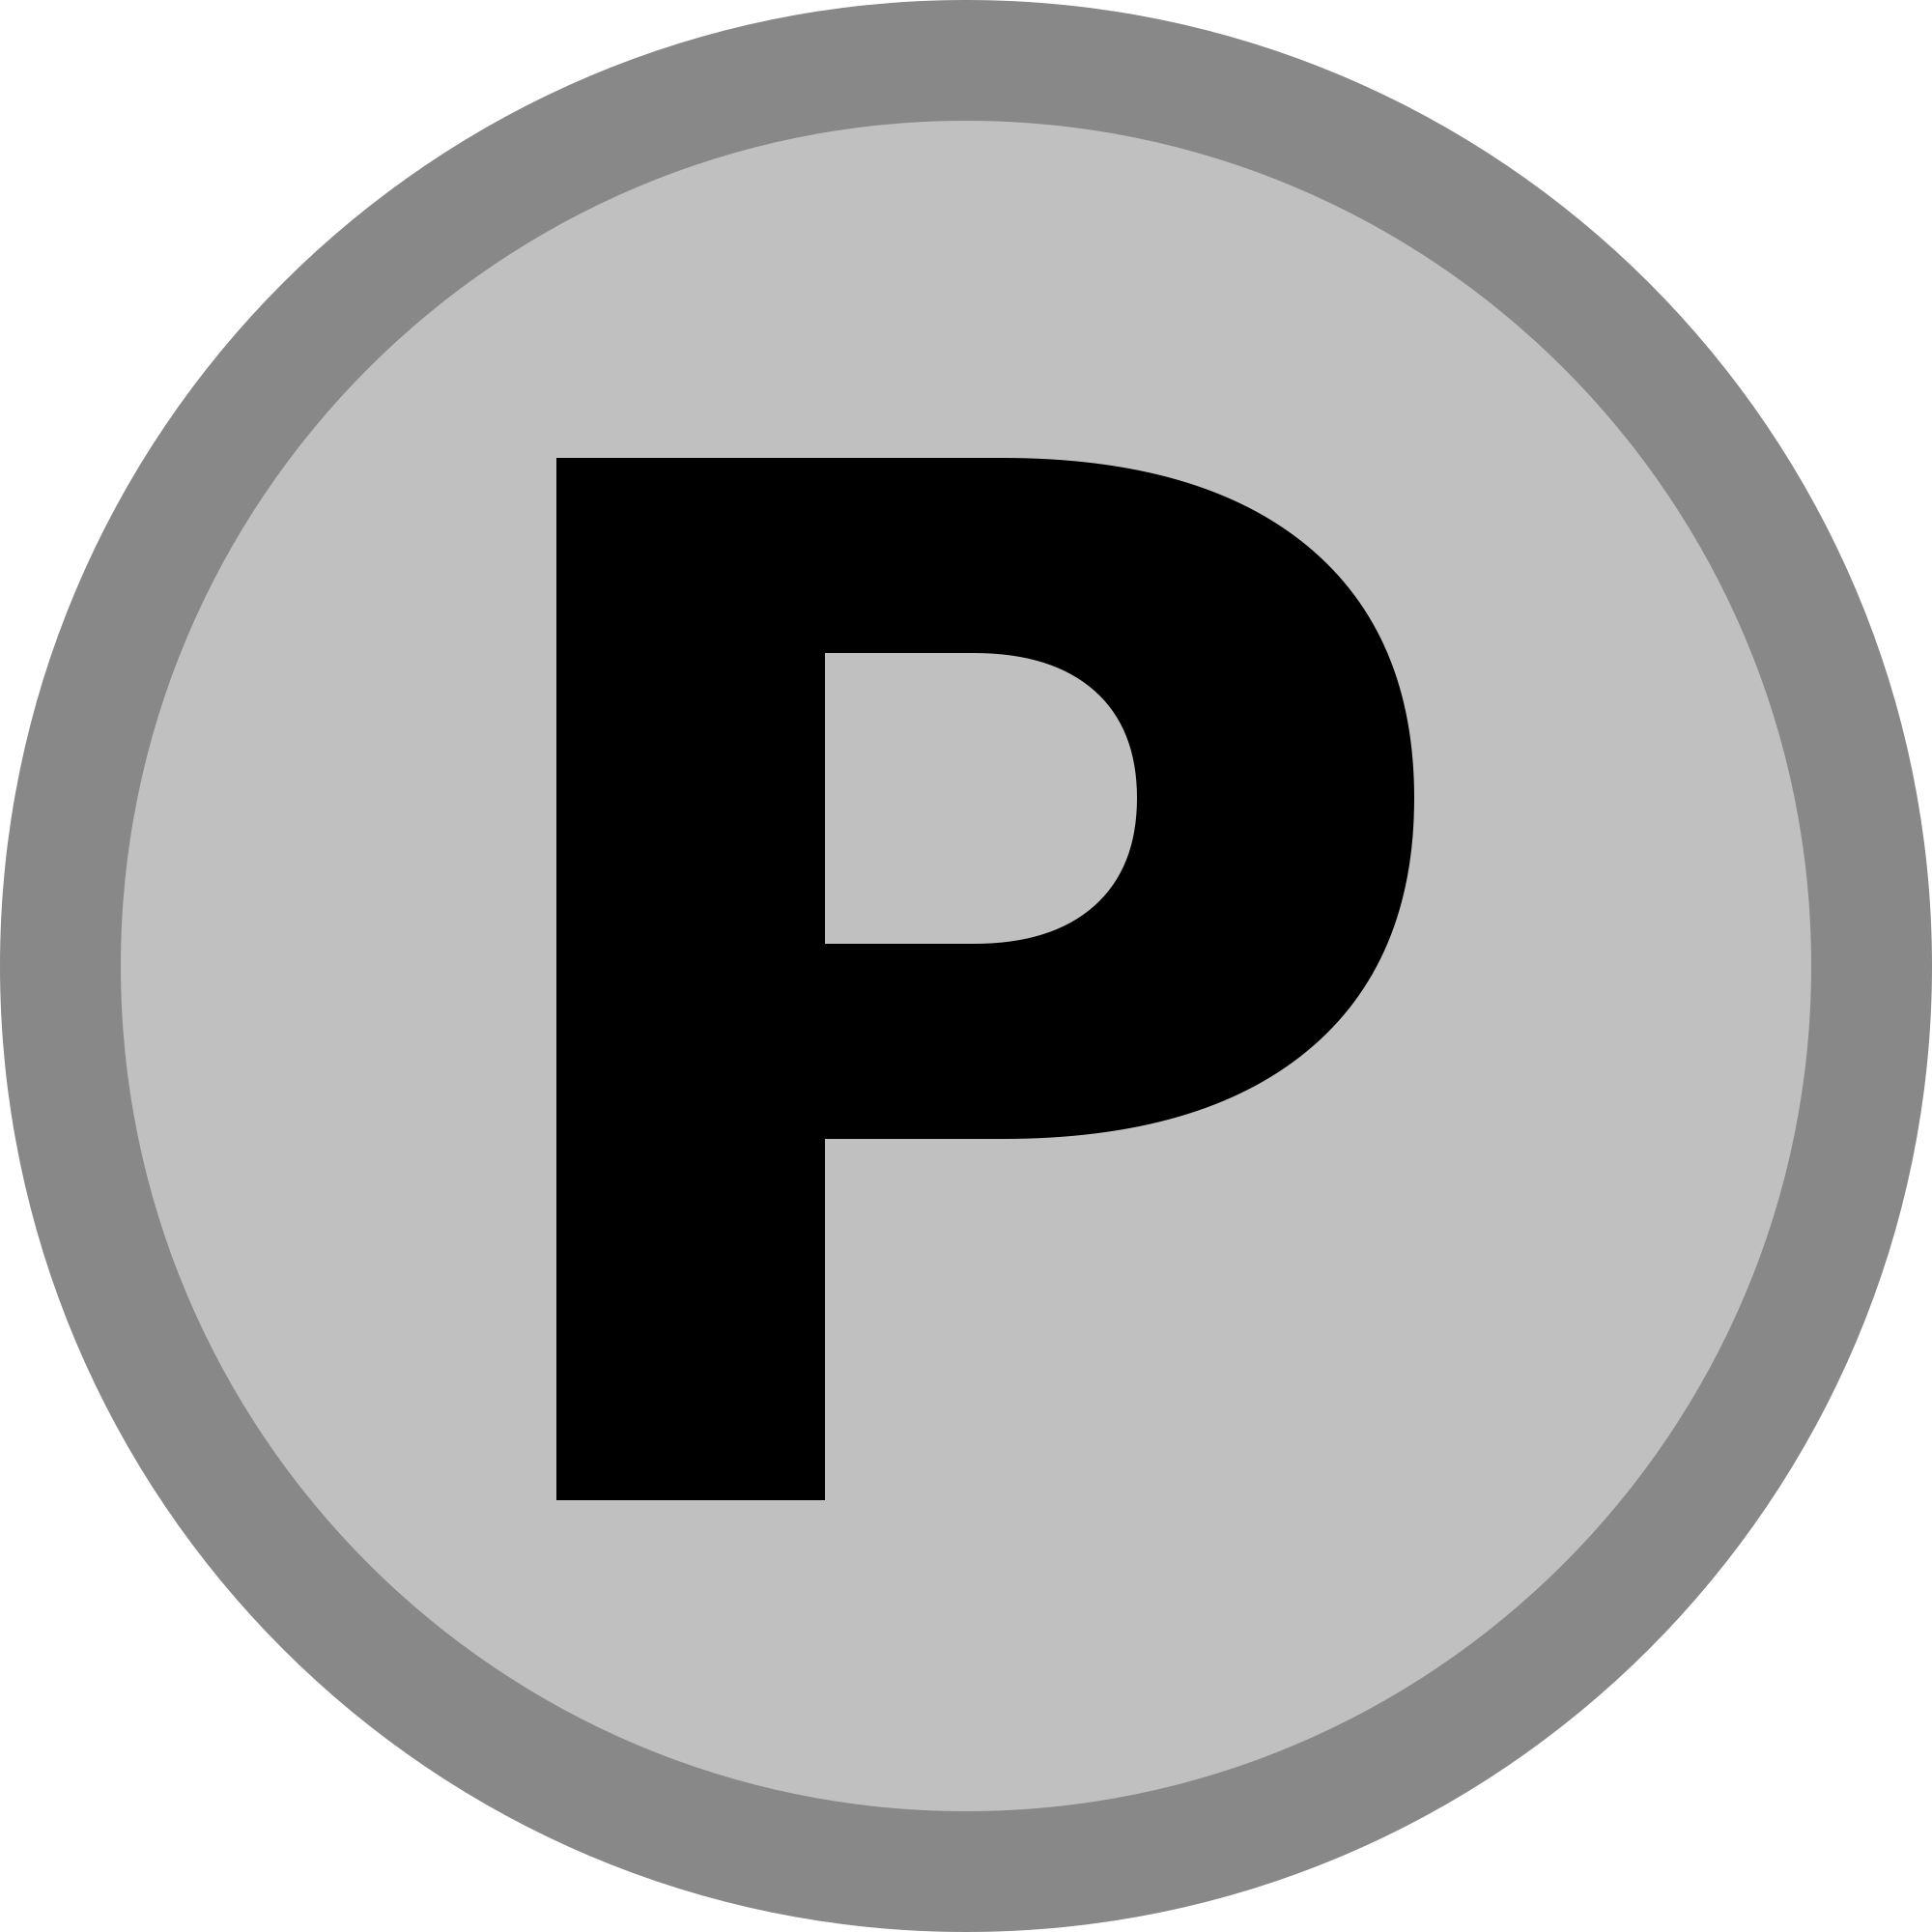 P transparent initial. File silver medal icon